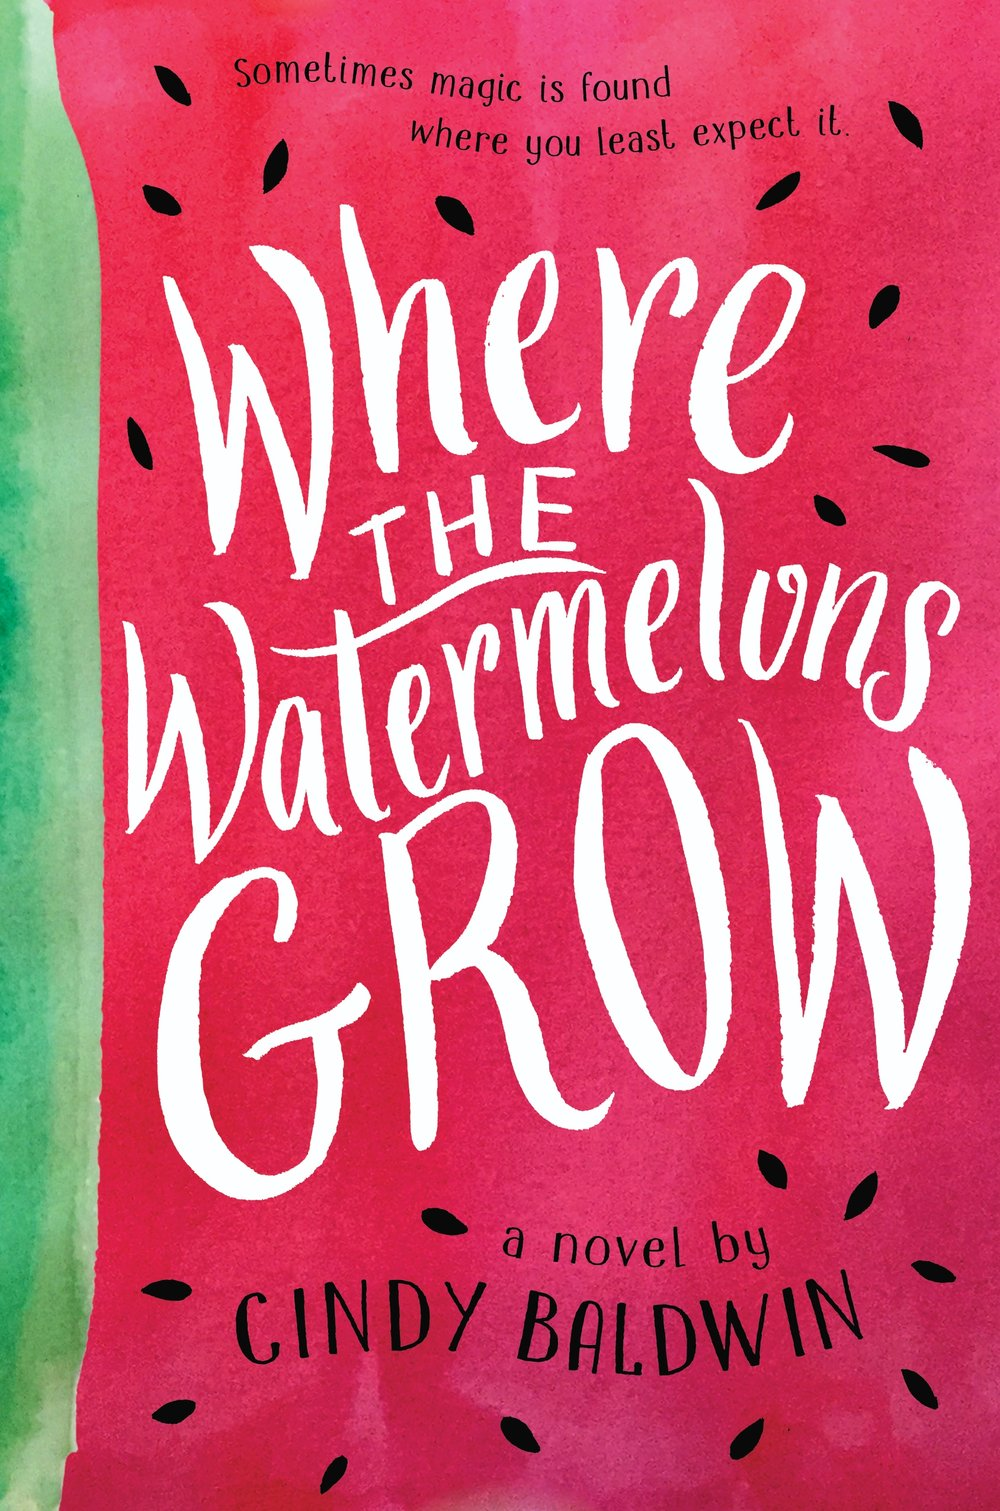 Happy book birthday to WHERE THE WATERMELONS GROW by Cindy Baldwin! - Fans of The Thing About Jellyfish and A Snicker of Magic will be swept away by Cindy Baldwin's debut middle grade about a girl coming to terms with her mother's mental illness.When twelve-year-old Della Kelly finds her mother furiously digging black seeds from a watermelon in the middle of the night and talking to people who aren't there, Della worries that it's happening again—that the sickness that put her mama in the hospital four years ago is back. That her mama is going to be hospitalized for months like she was last time.With her daddy struggling to save the farm and her mama in denial about what's happening, it's up to Della to heal her mama for good. And she knows just how she'll do it: with a jar of the Bee Lady's magic honey, which has mended the wounds and woes of Maryville, North Carolina, for generations.But when the Bee Lady says that the solution might have less to do with fixing Mama's brain and more to do with healing her own heart, Della must learn that love means accepting her mama just as she is.